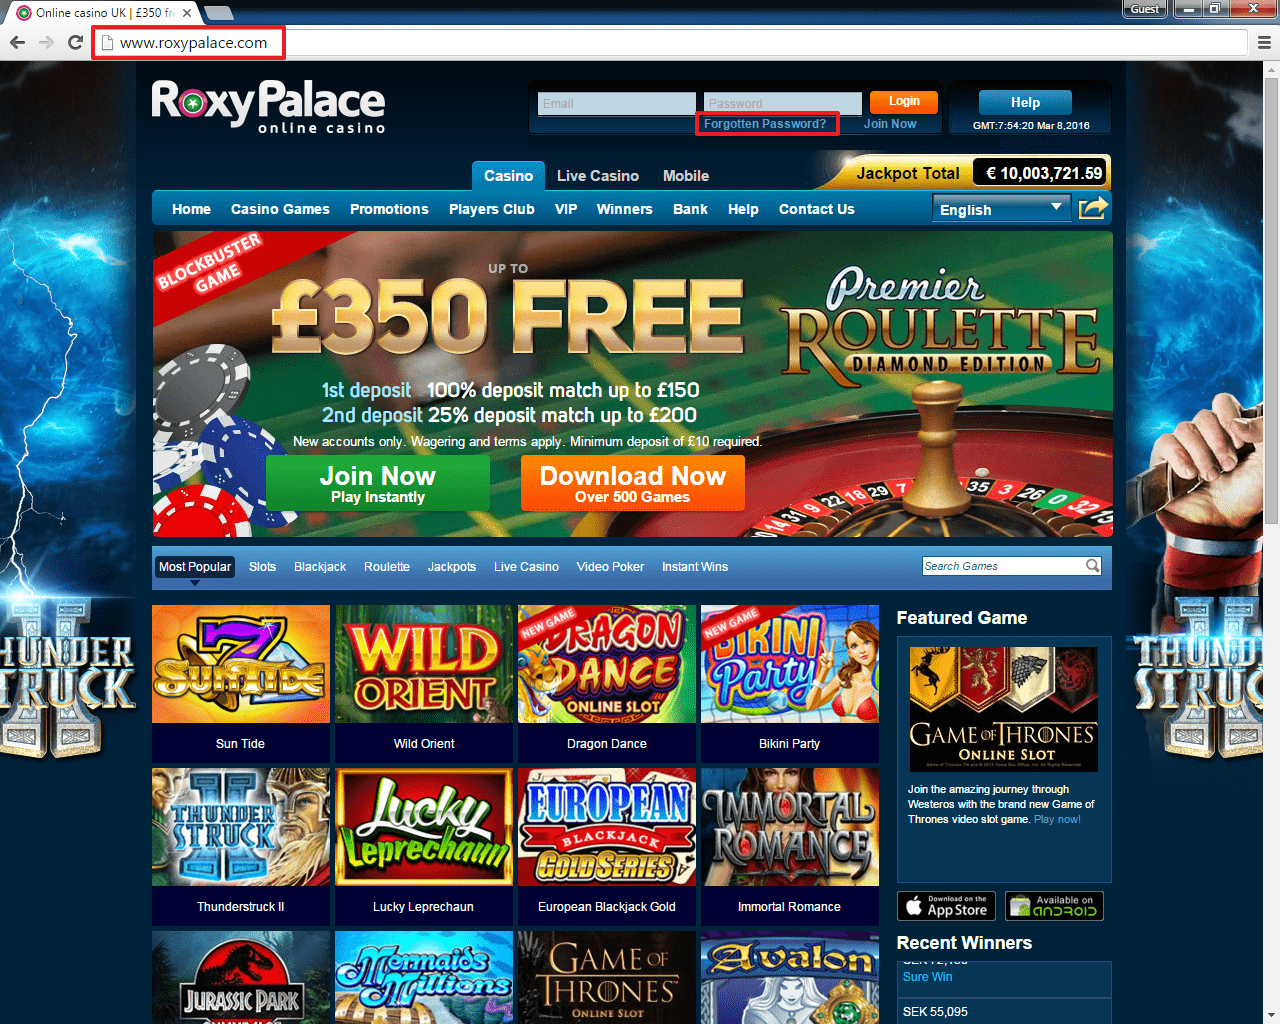 Roxy Palace casino login 2